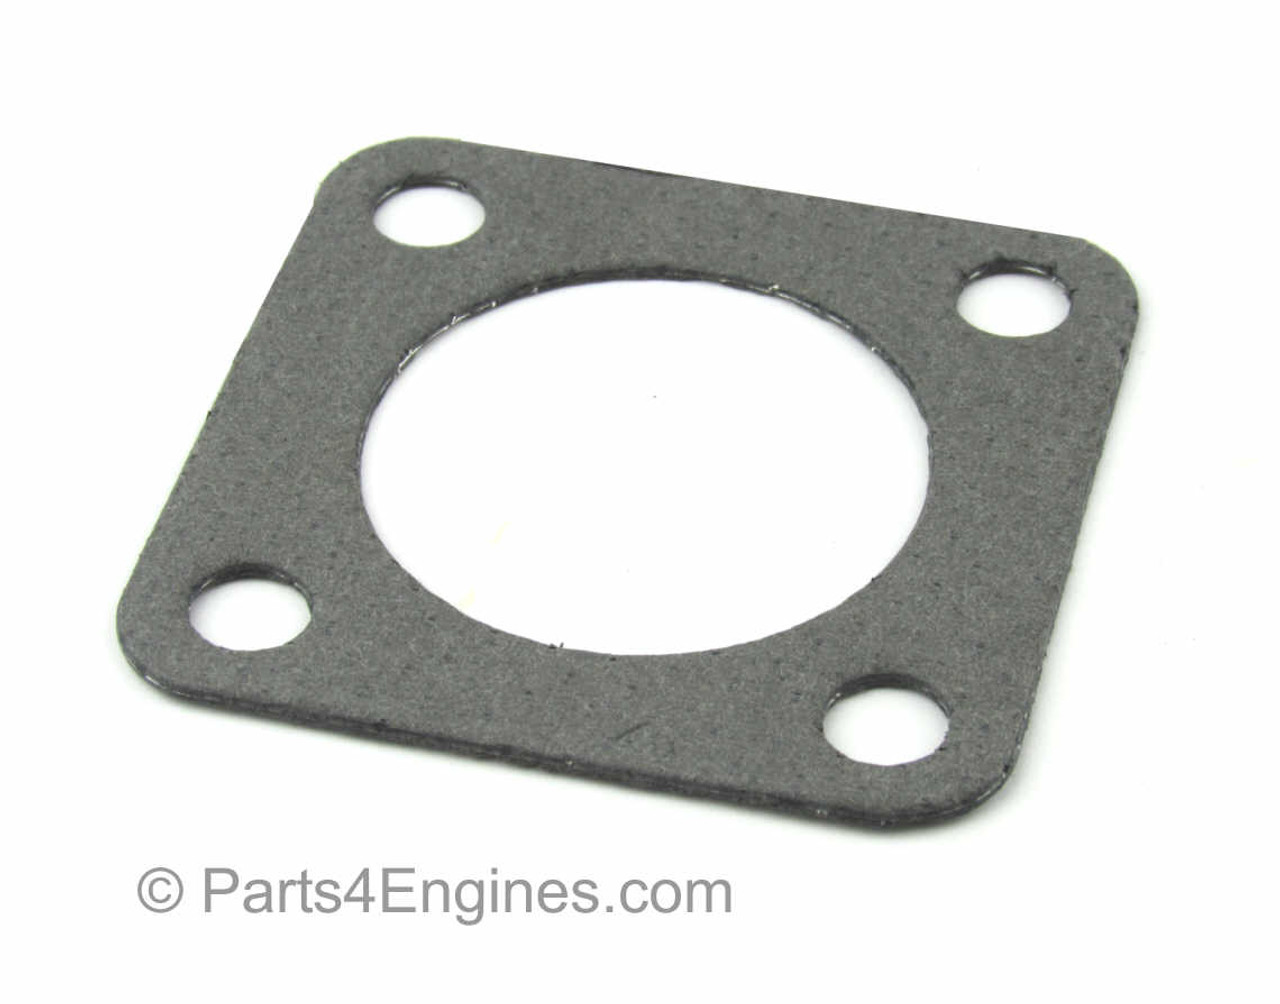 Volvo Penta MD2030 exhaust outlet gasket from parts4engines.com